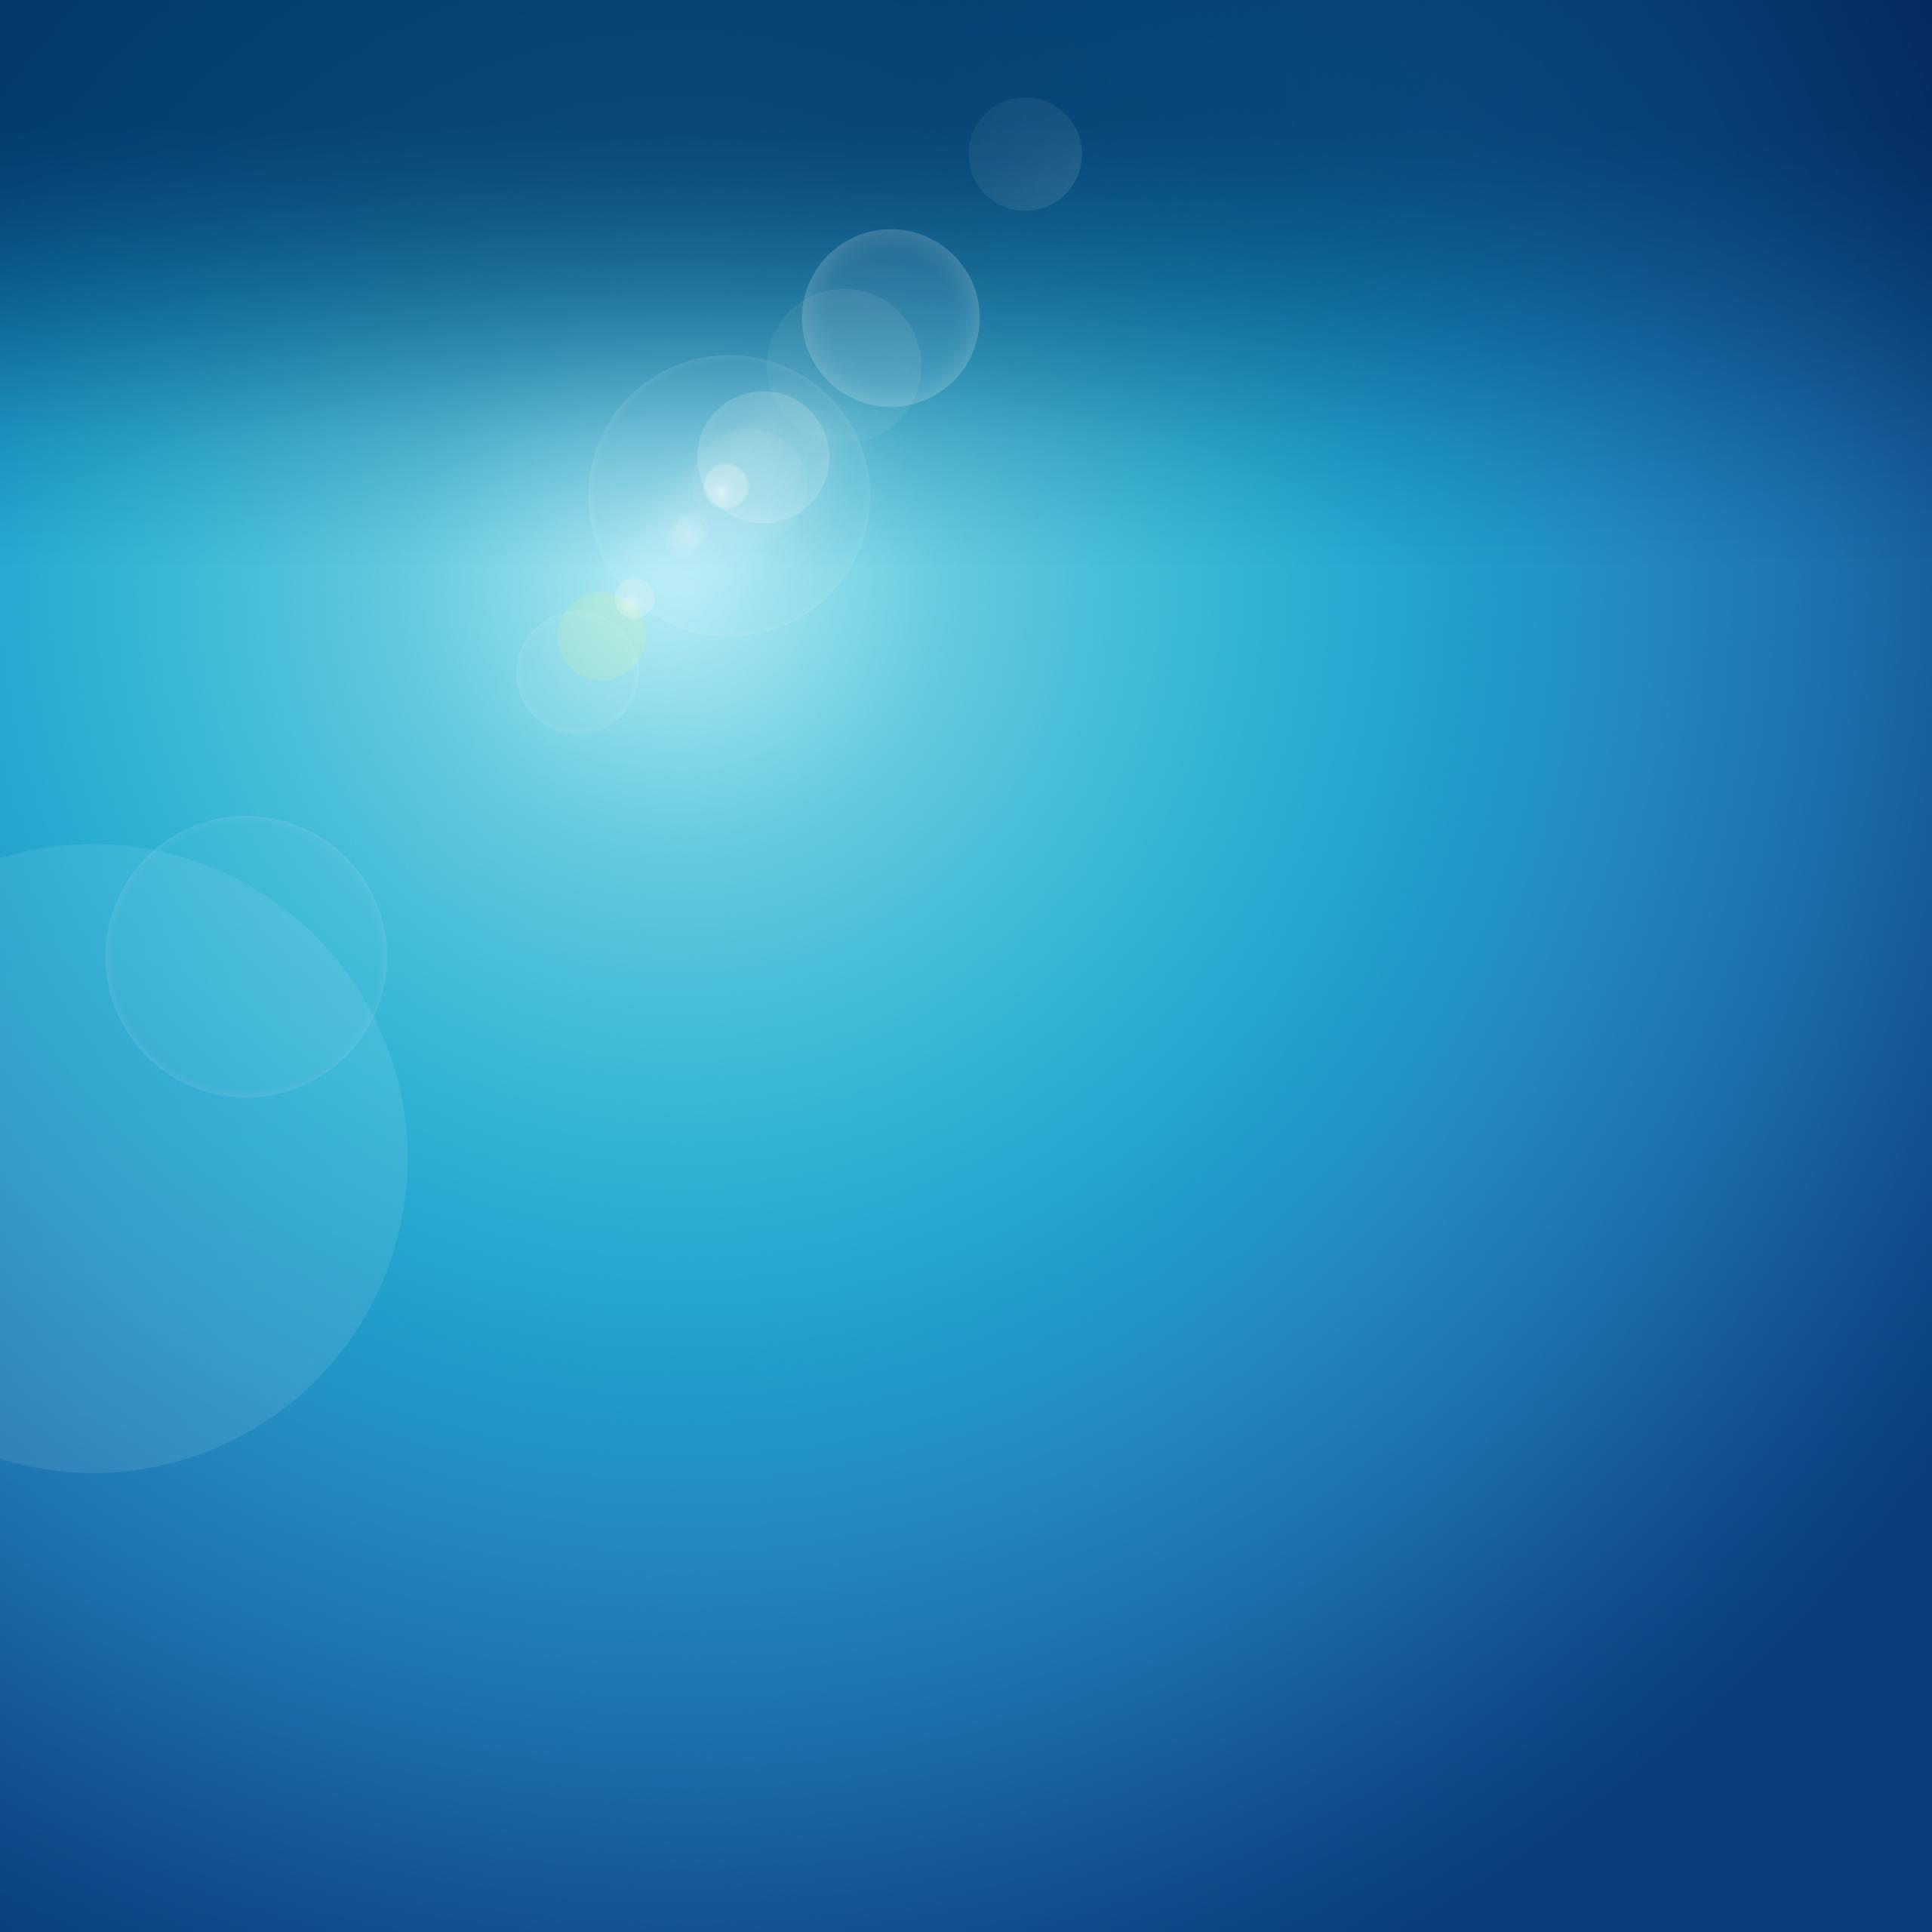 Smartphone Wallpaper 1080x1920: Simple Blue Wallpaper For Pc, Mac, Iphone & Android Free